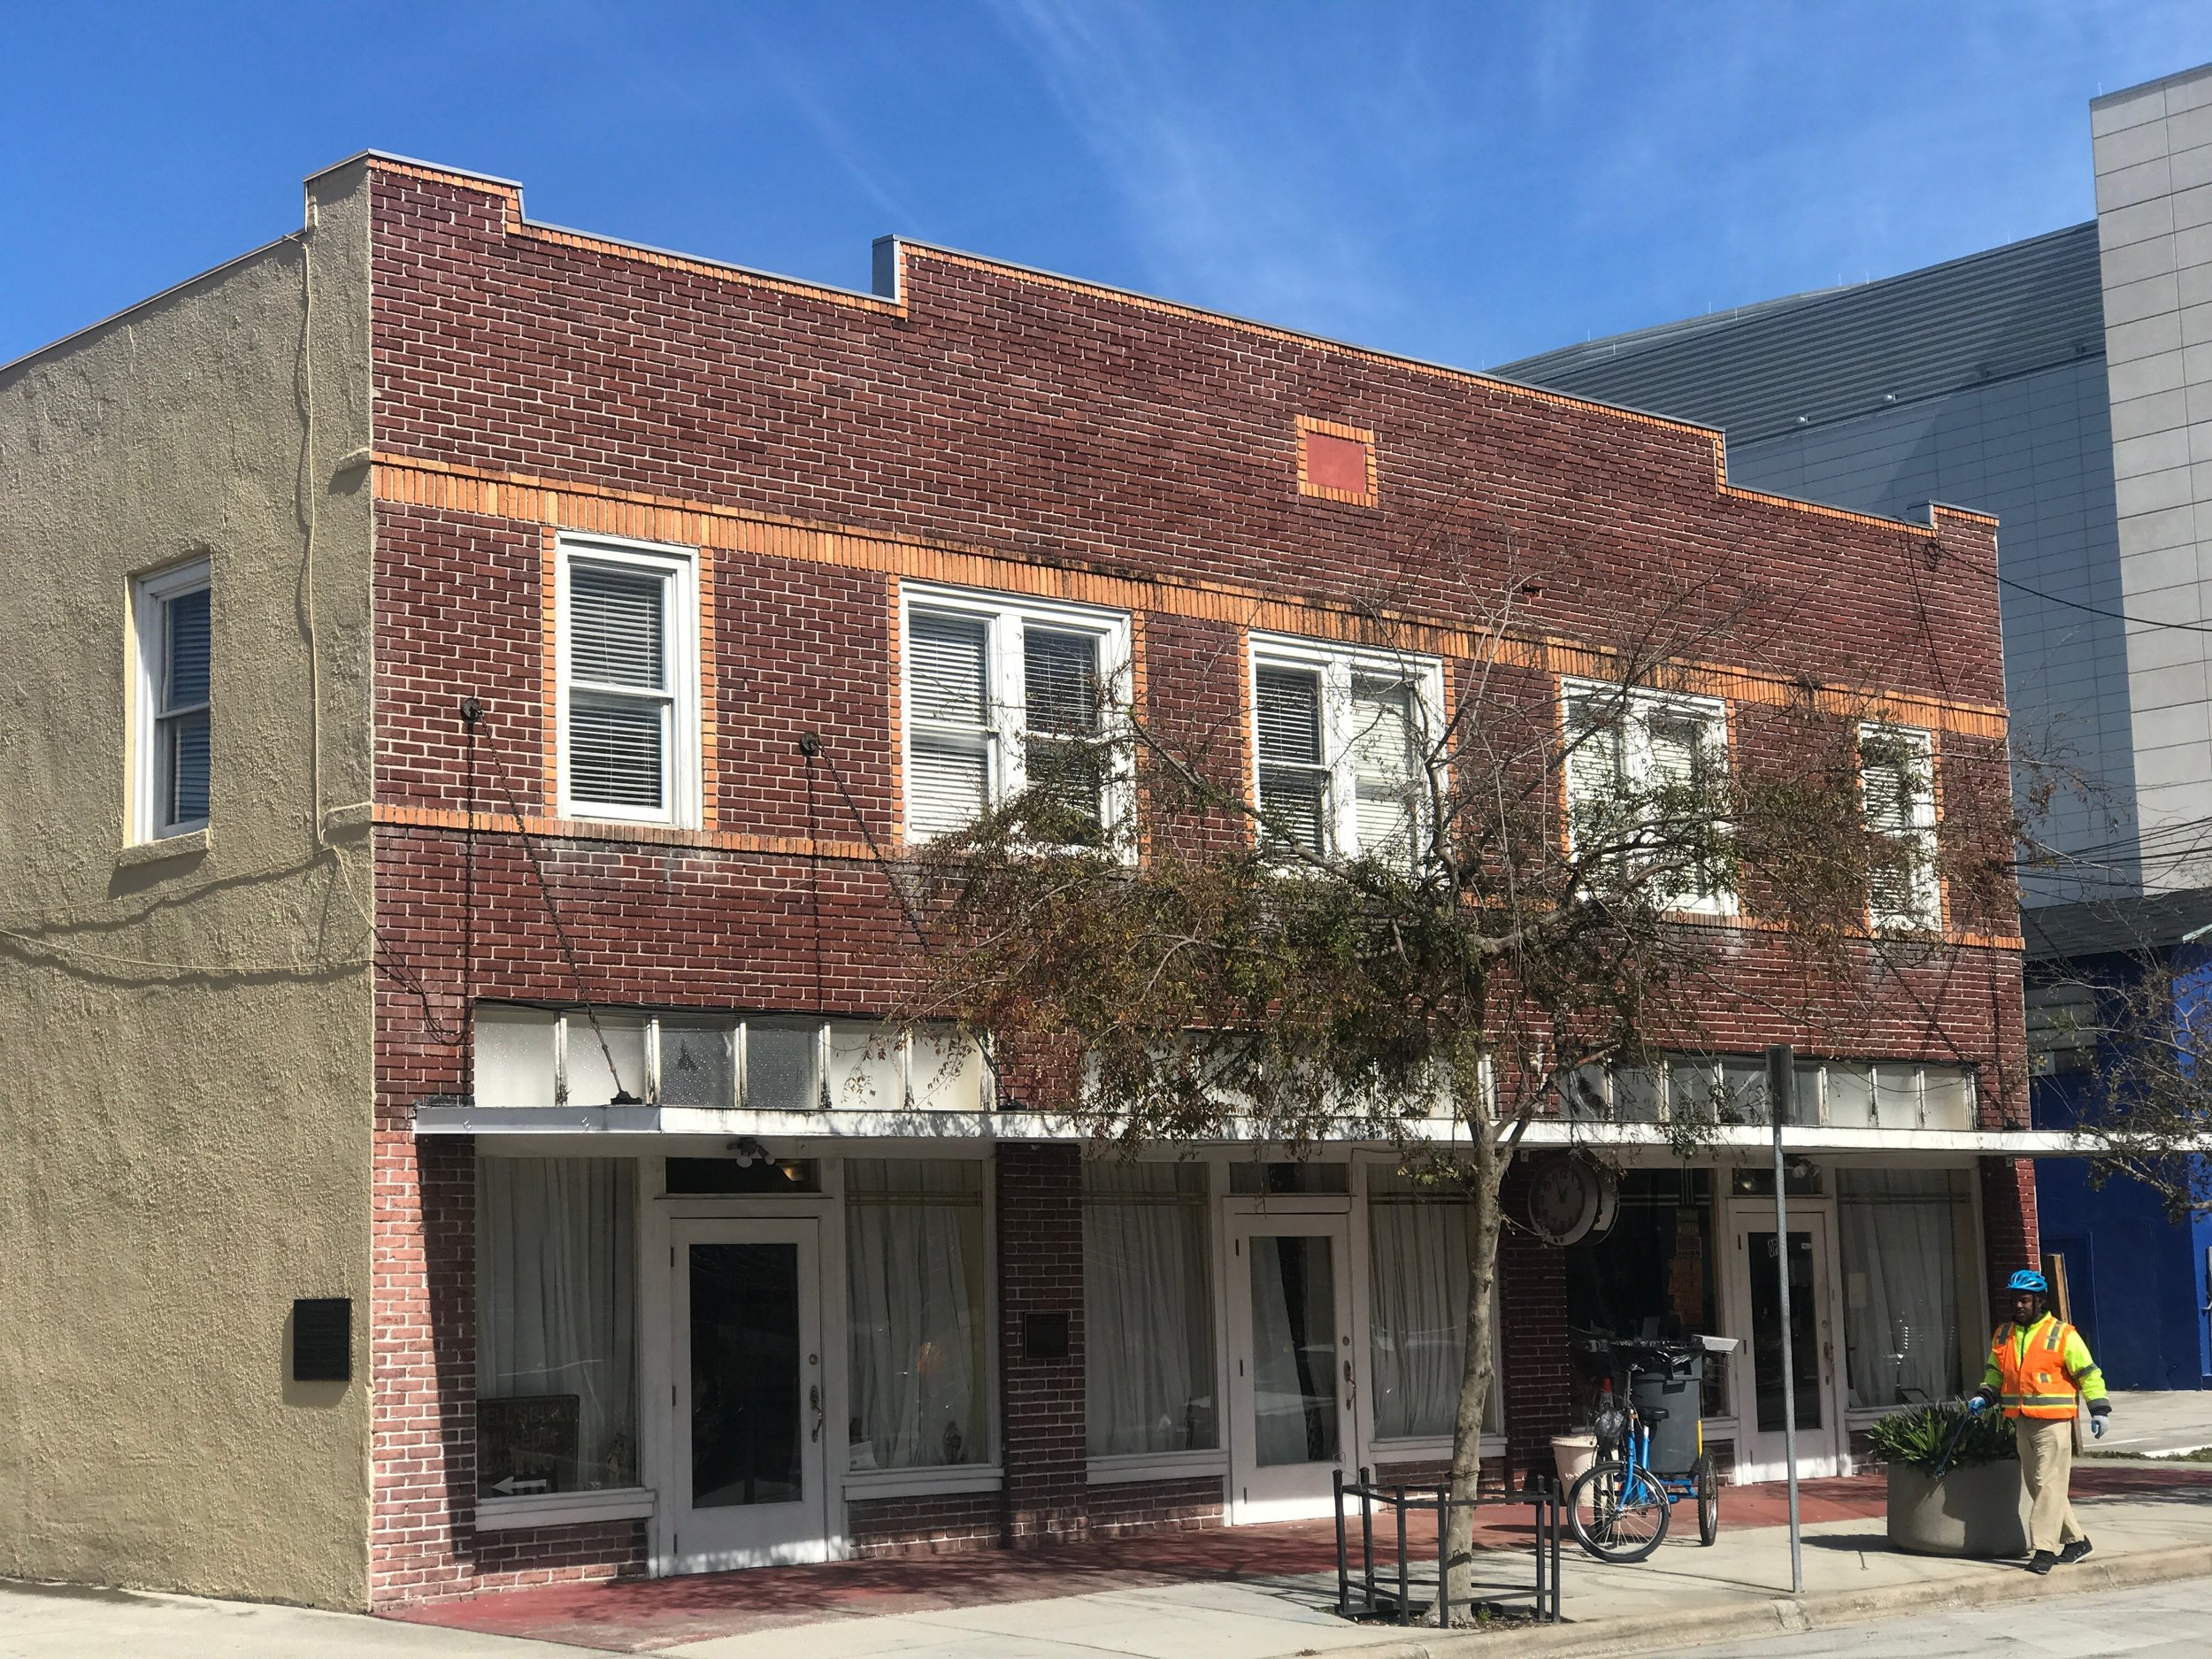 The Wells'Built Hotel in Orlando's Parramore neighborhood now houses a museum of African American history and culture.